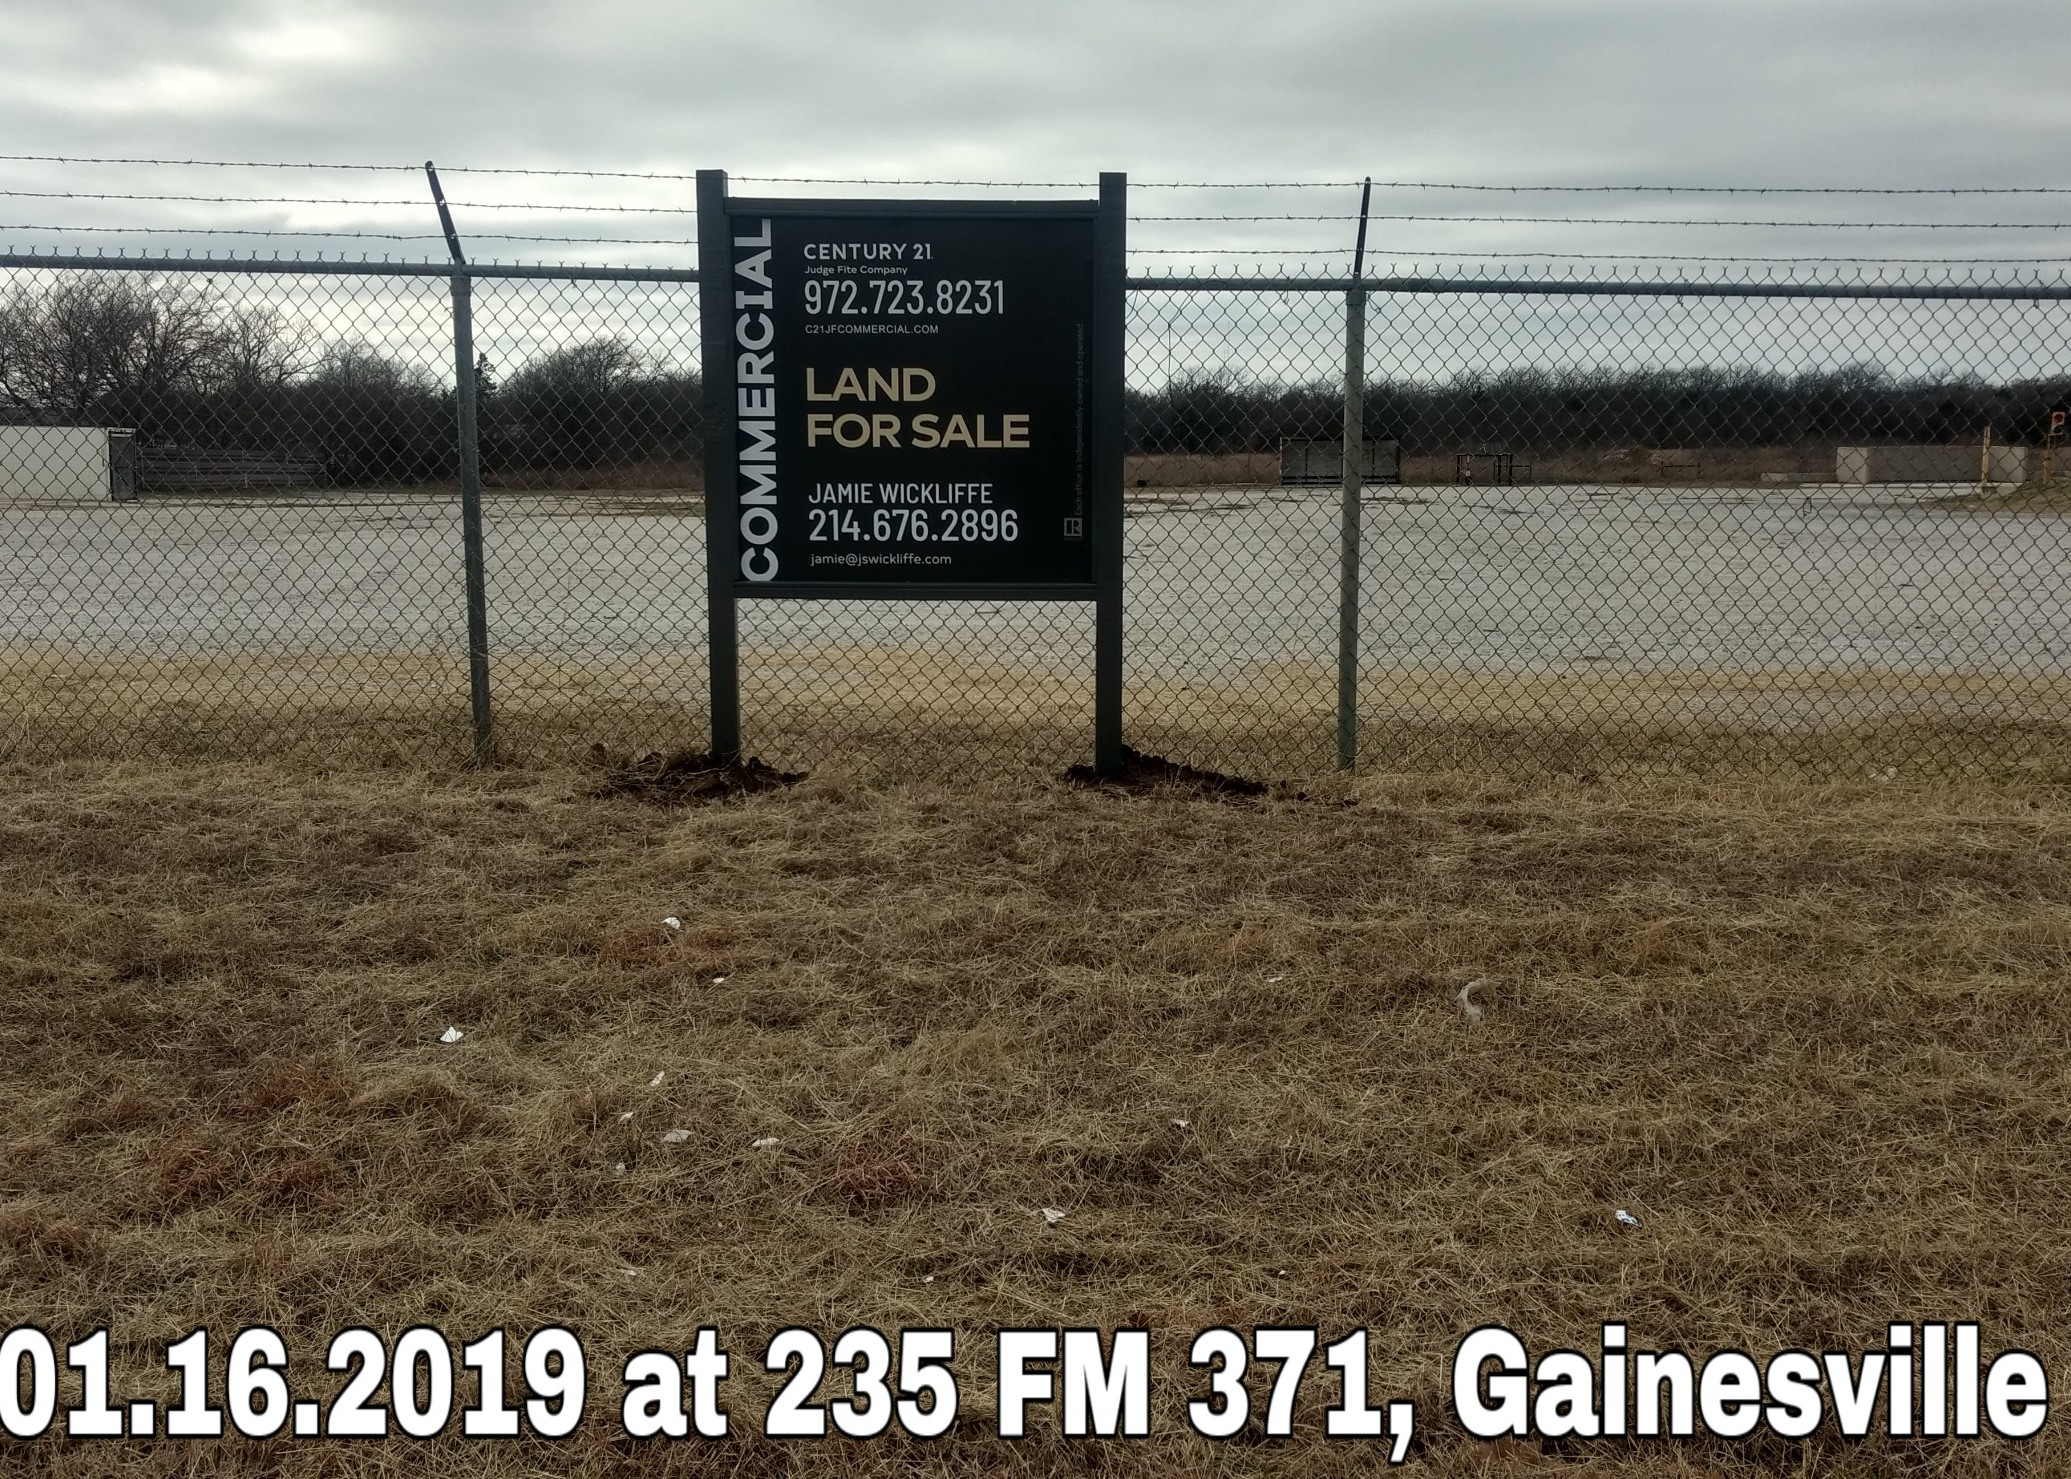 Invoice 1812 at 235 FM 371 Gainsville Te